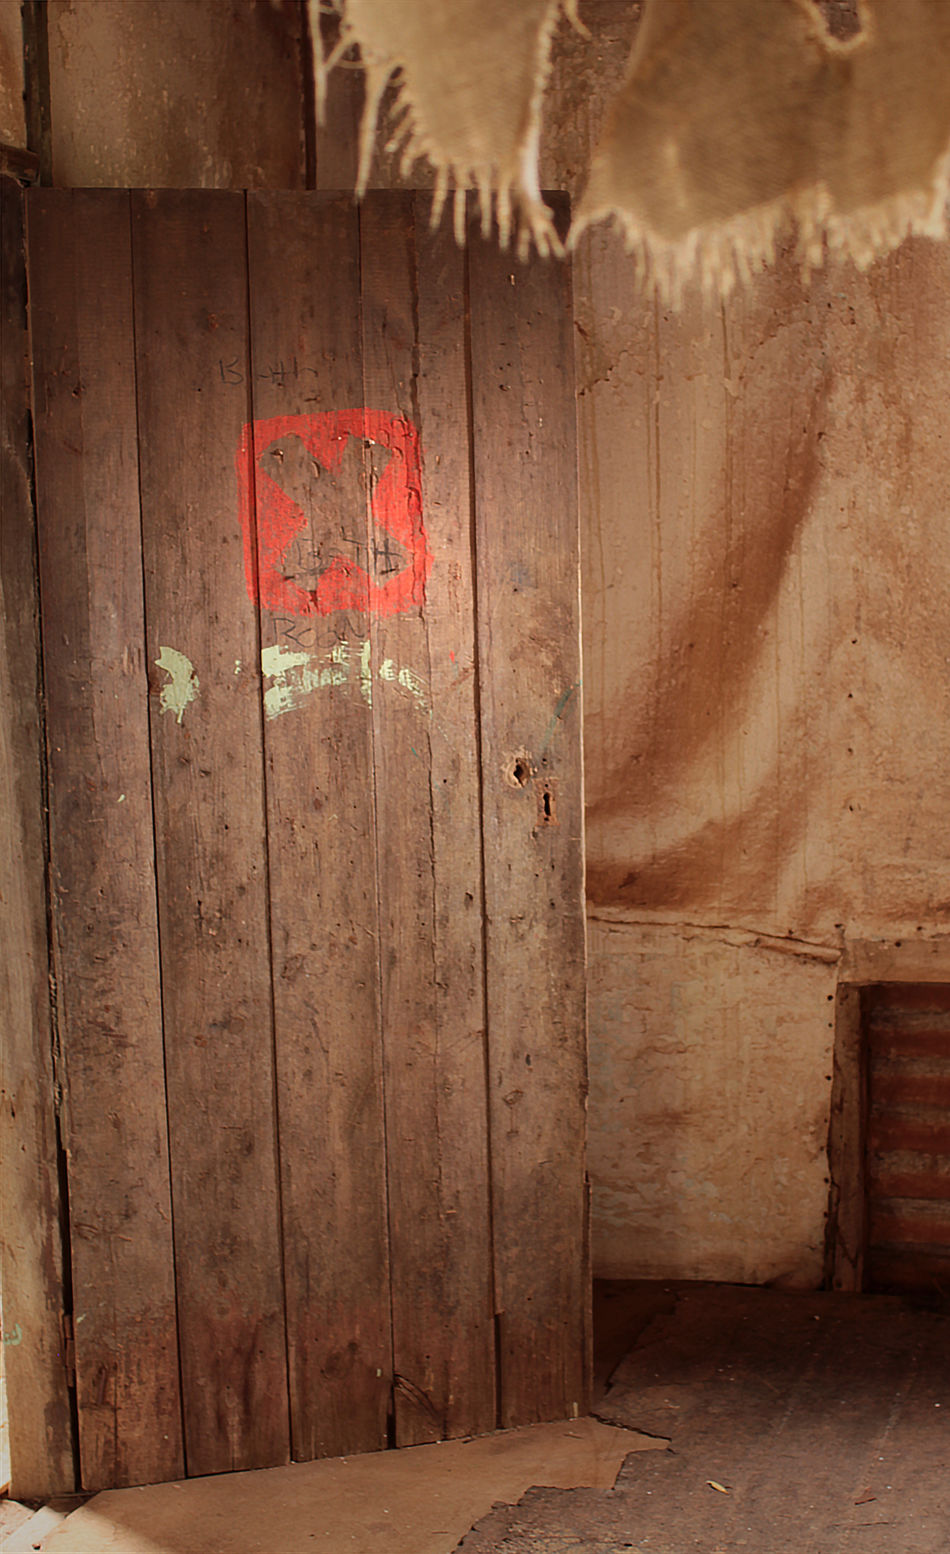 Abandoned Abandoned & Derelict Abandoned Buildings Abandoned Places Architecture Built Structure Cross Door Hessian Indoors  No People Red Cross Wood - Material Wooden Door